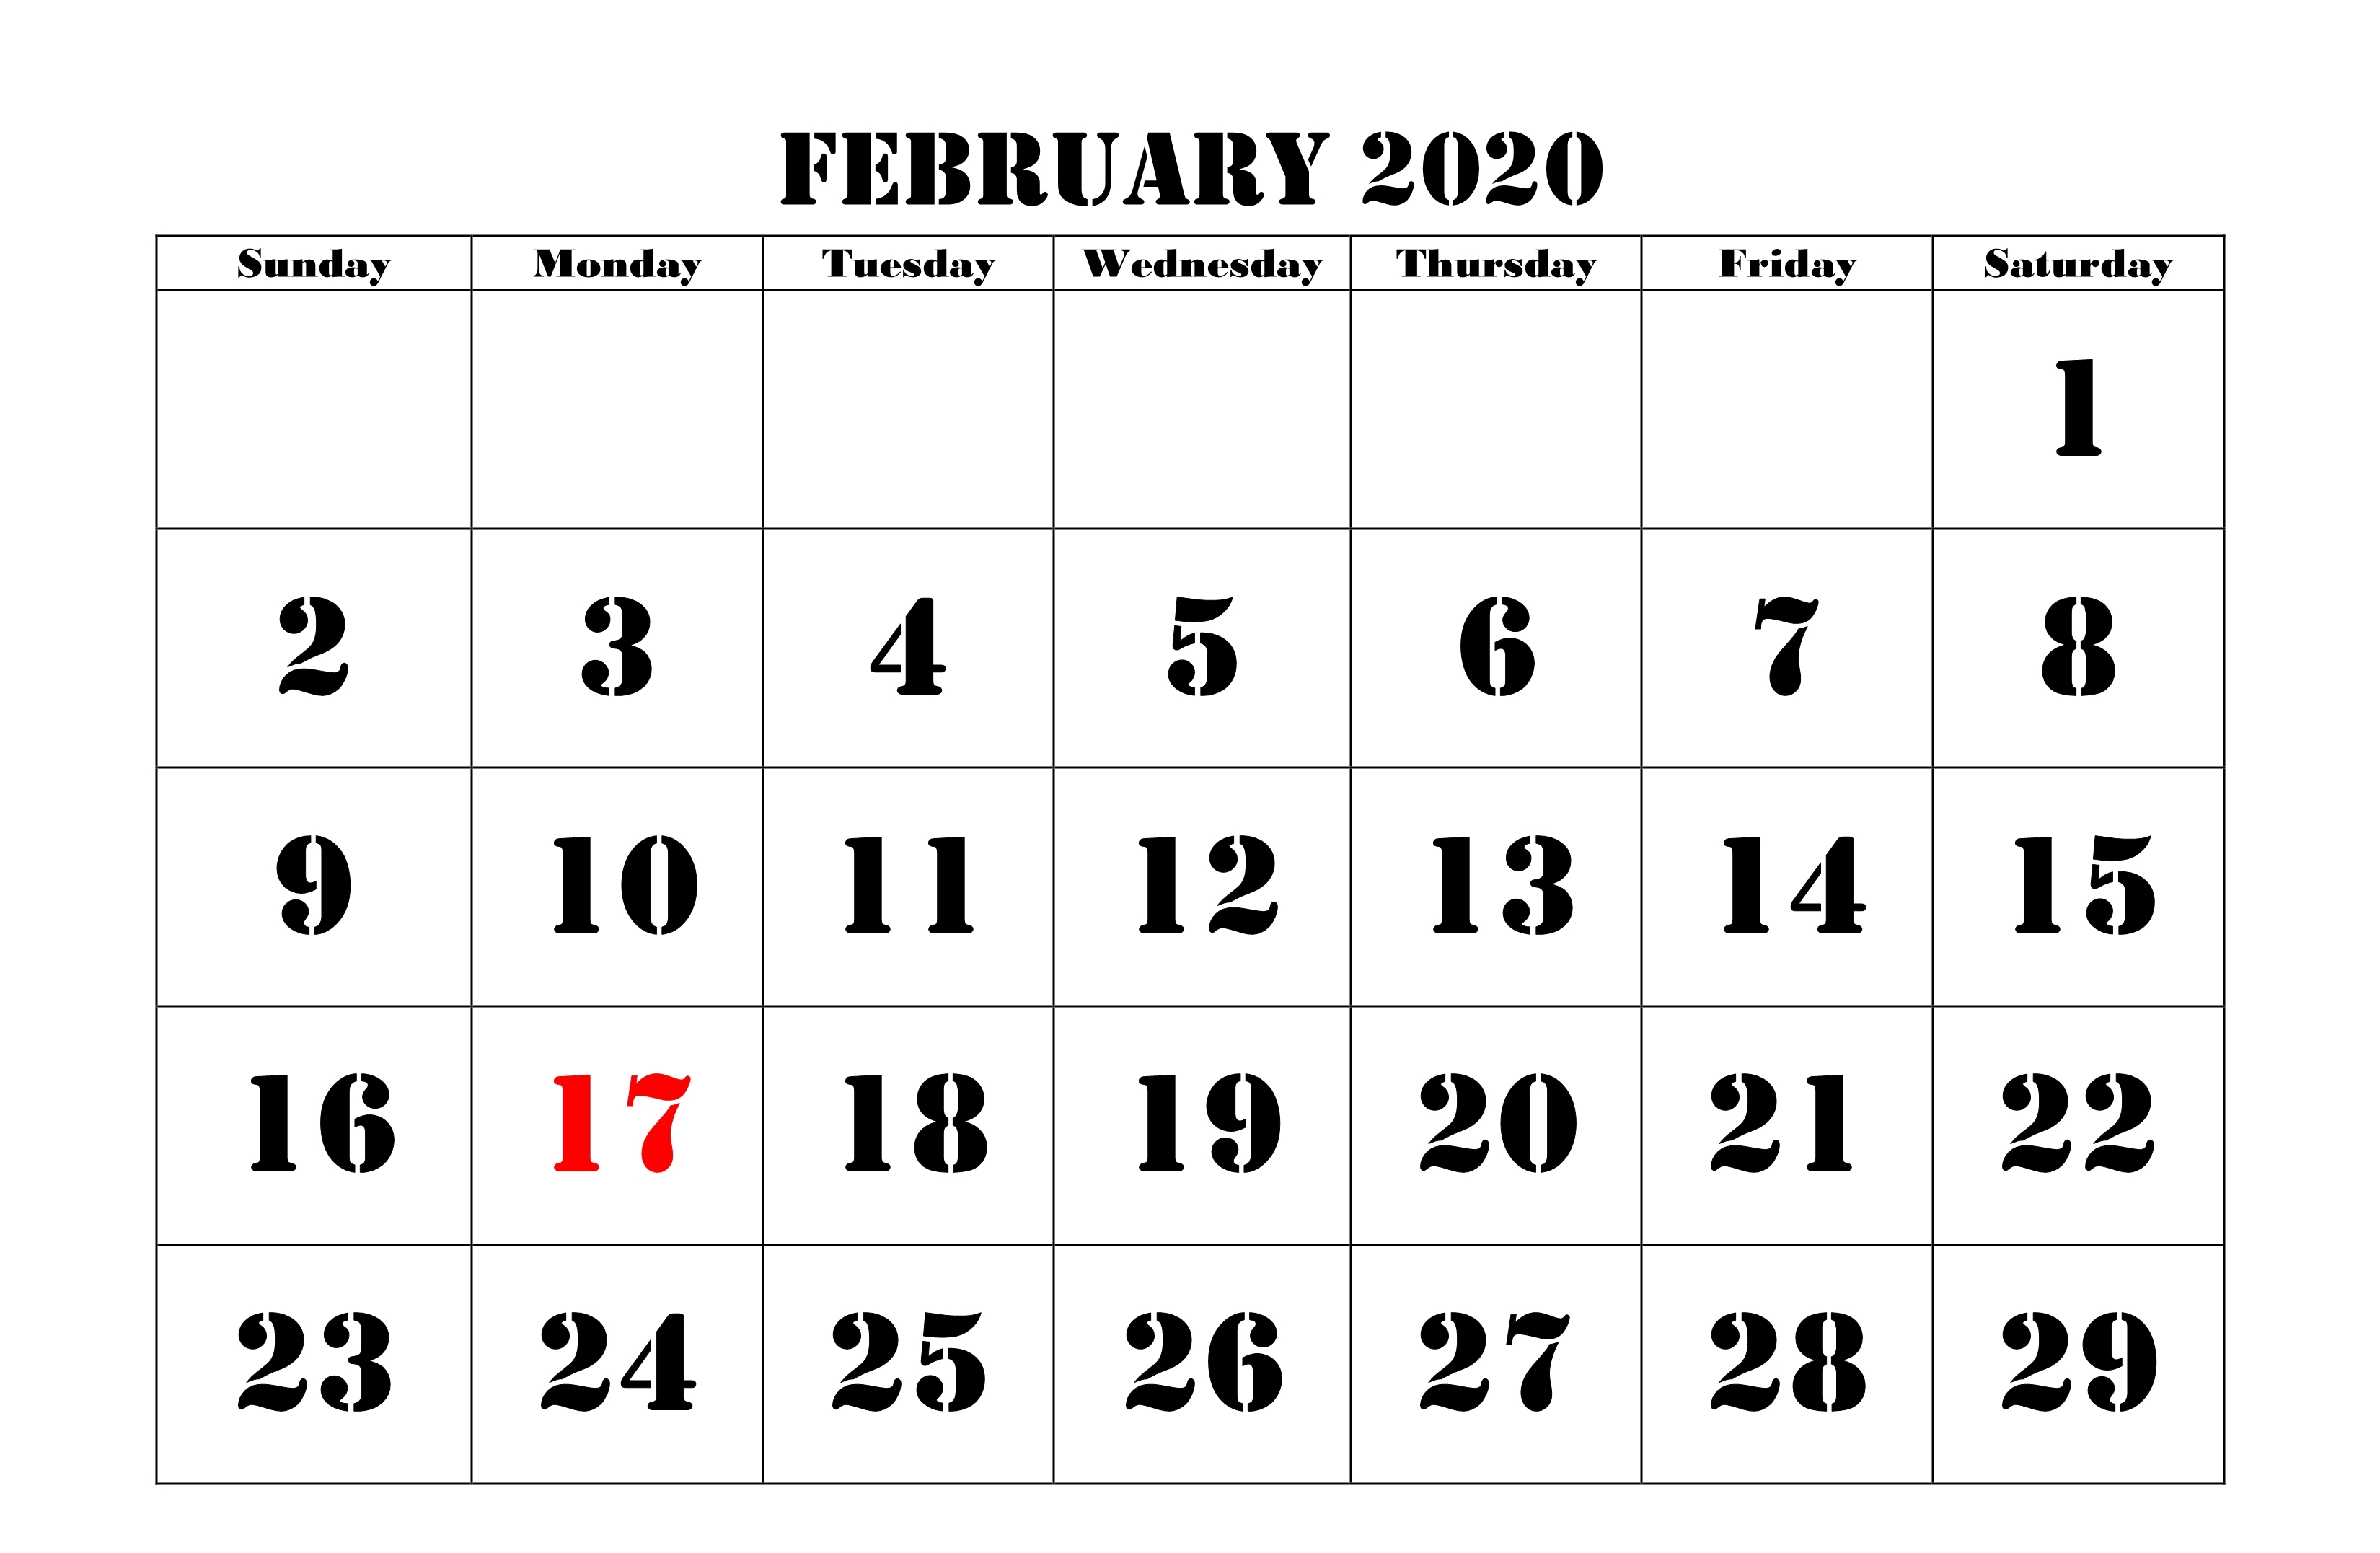 February Calendar 2020 Holidays Template